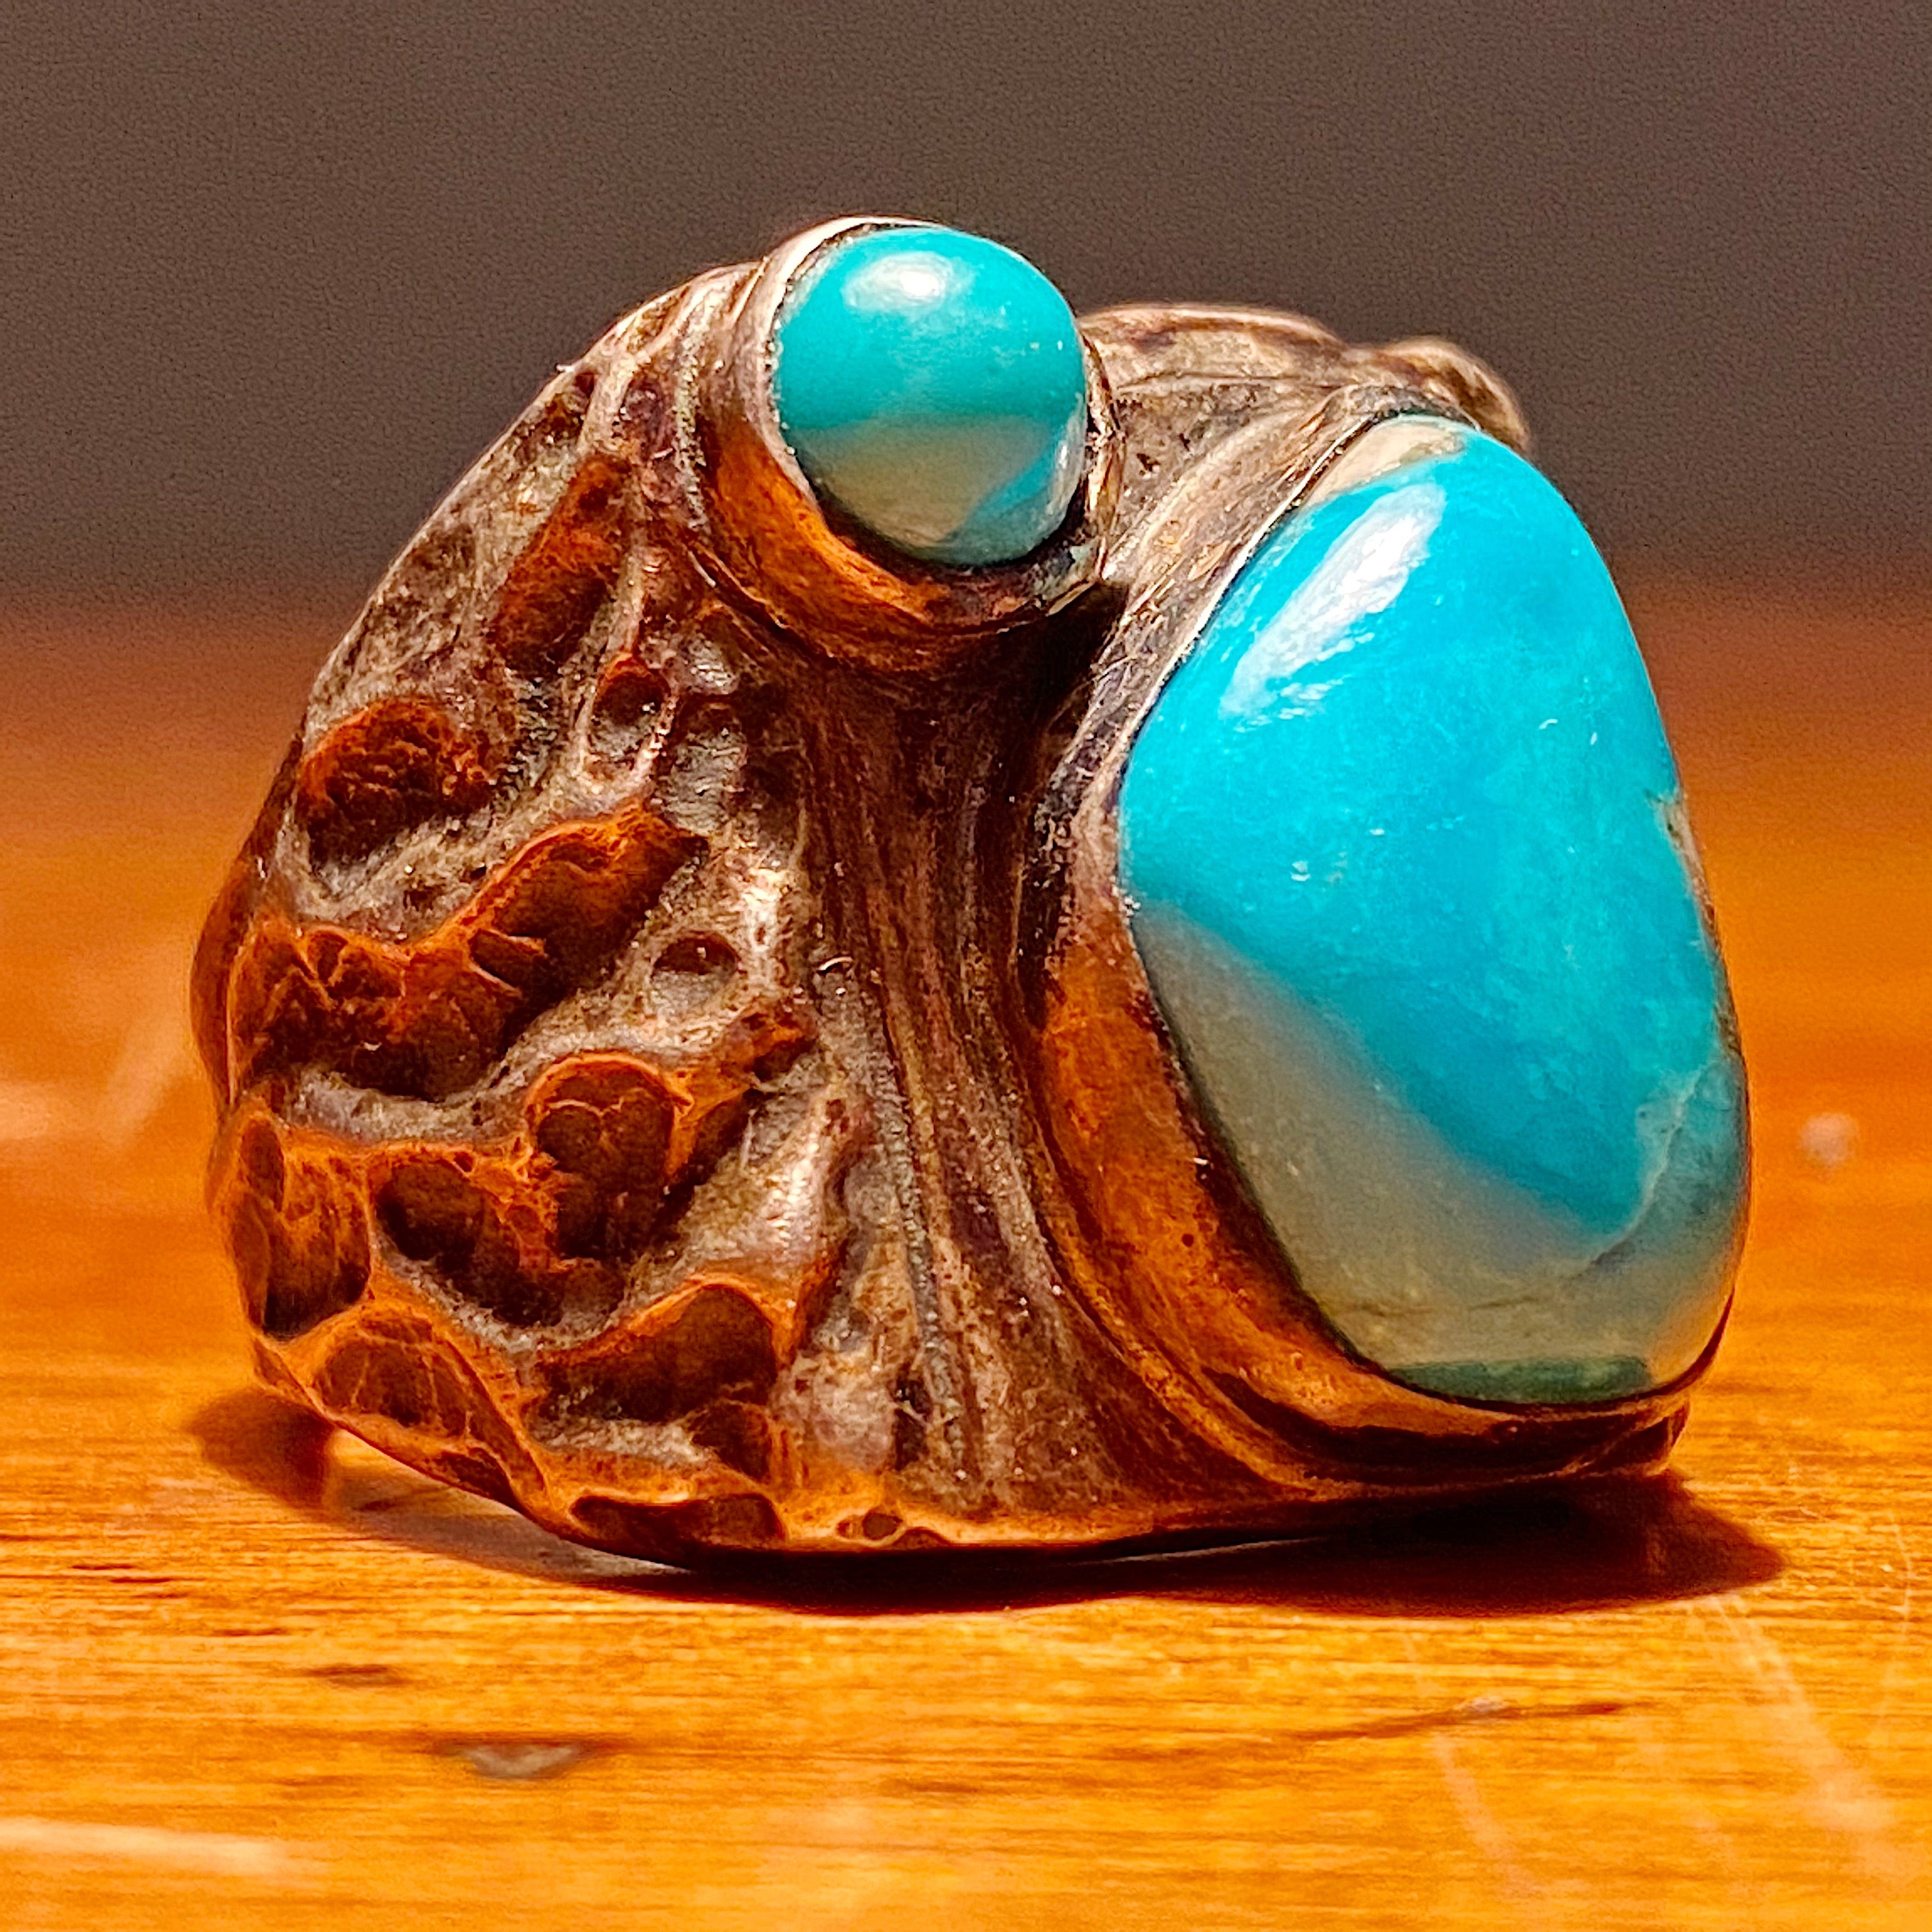 Vintage Dead Pawn Turquoise Biker Ring - Navajo Men's Size 9 - Unmarked Early Example - Rare Unusual Southwestern Design